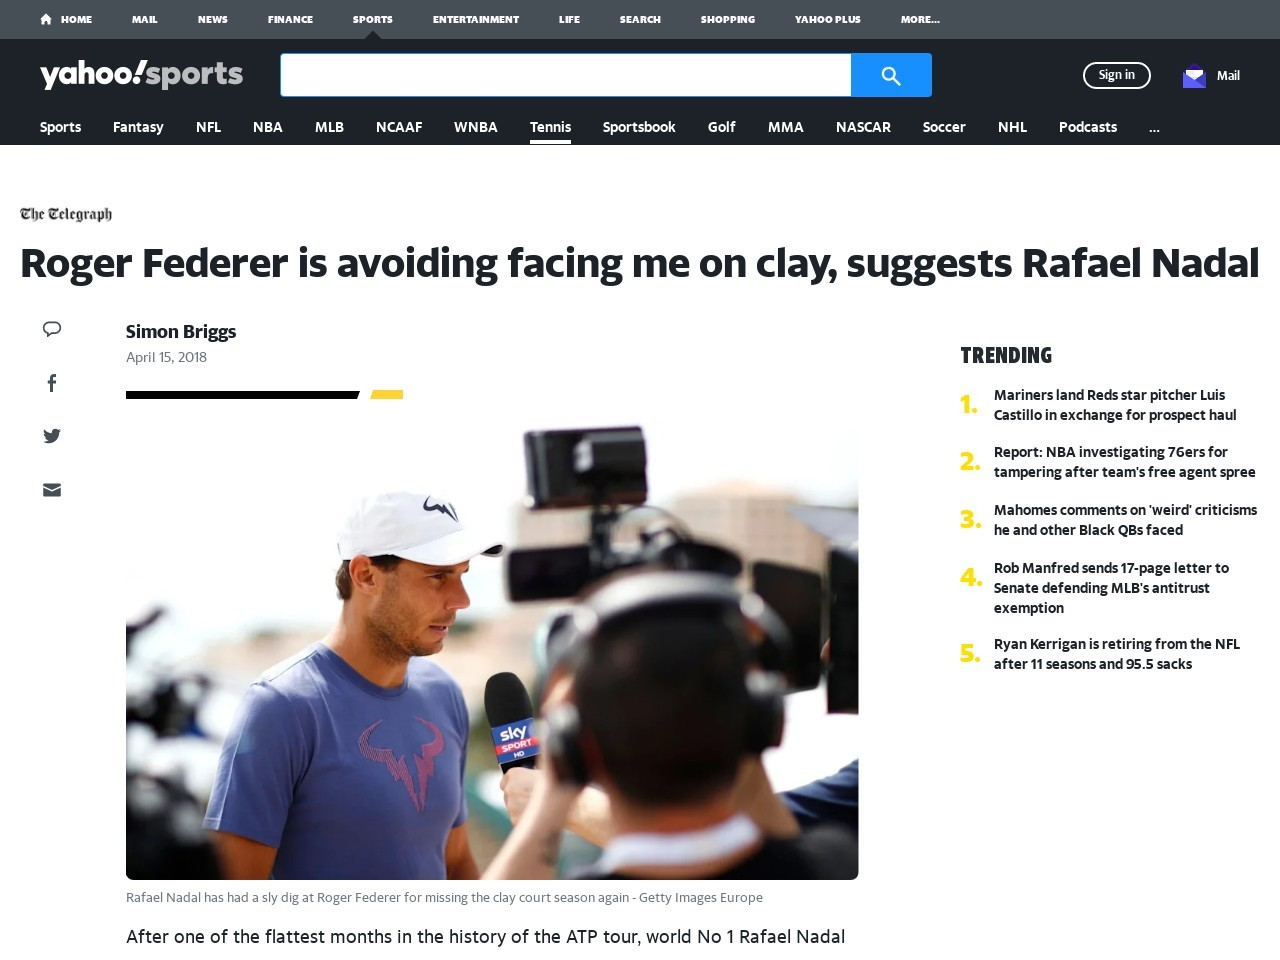 Roger Federer is avoiding facing me on clay, suggests Rafael Nadal